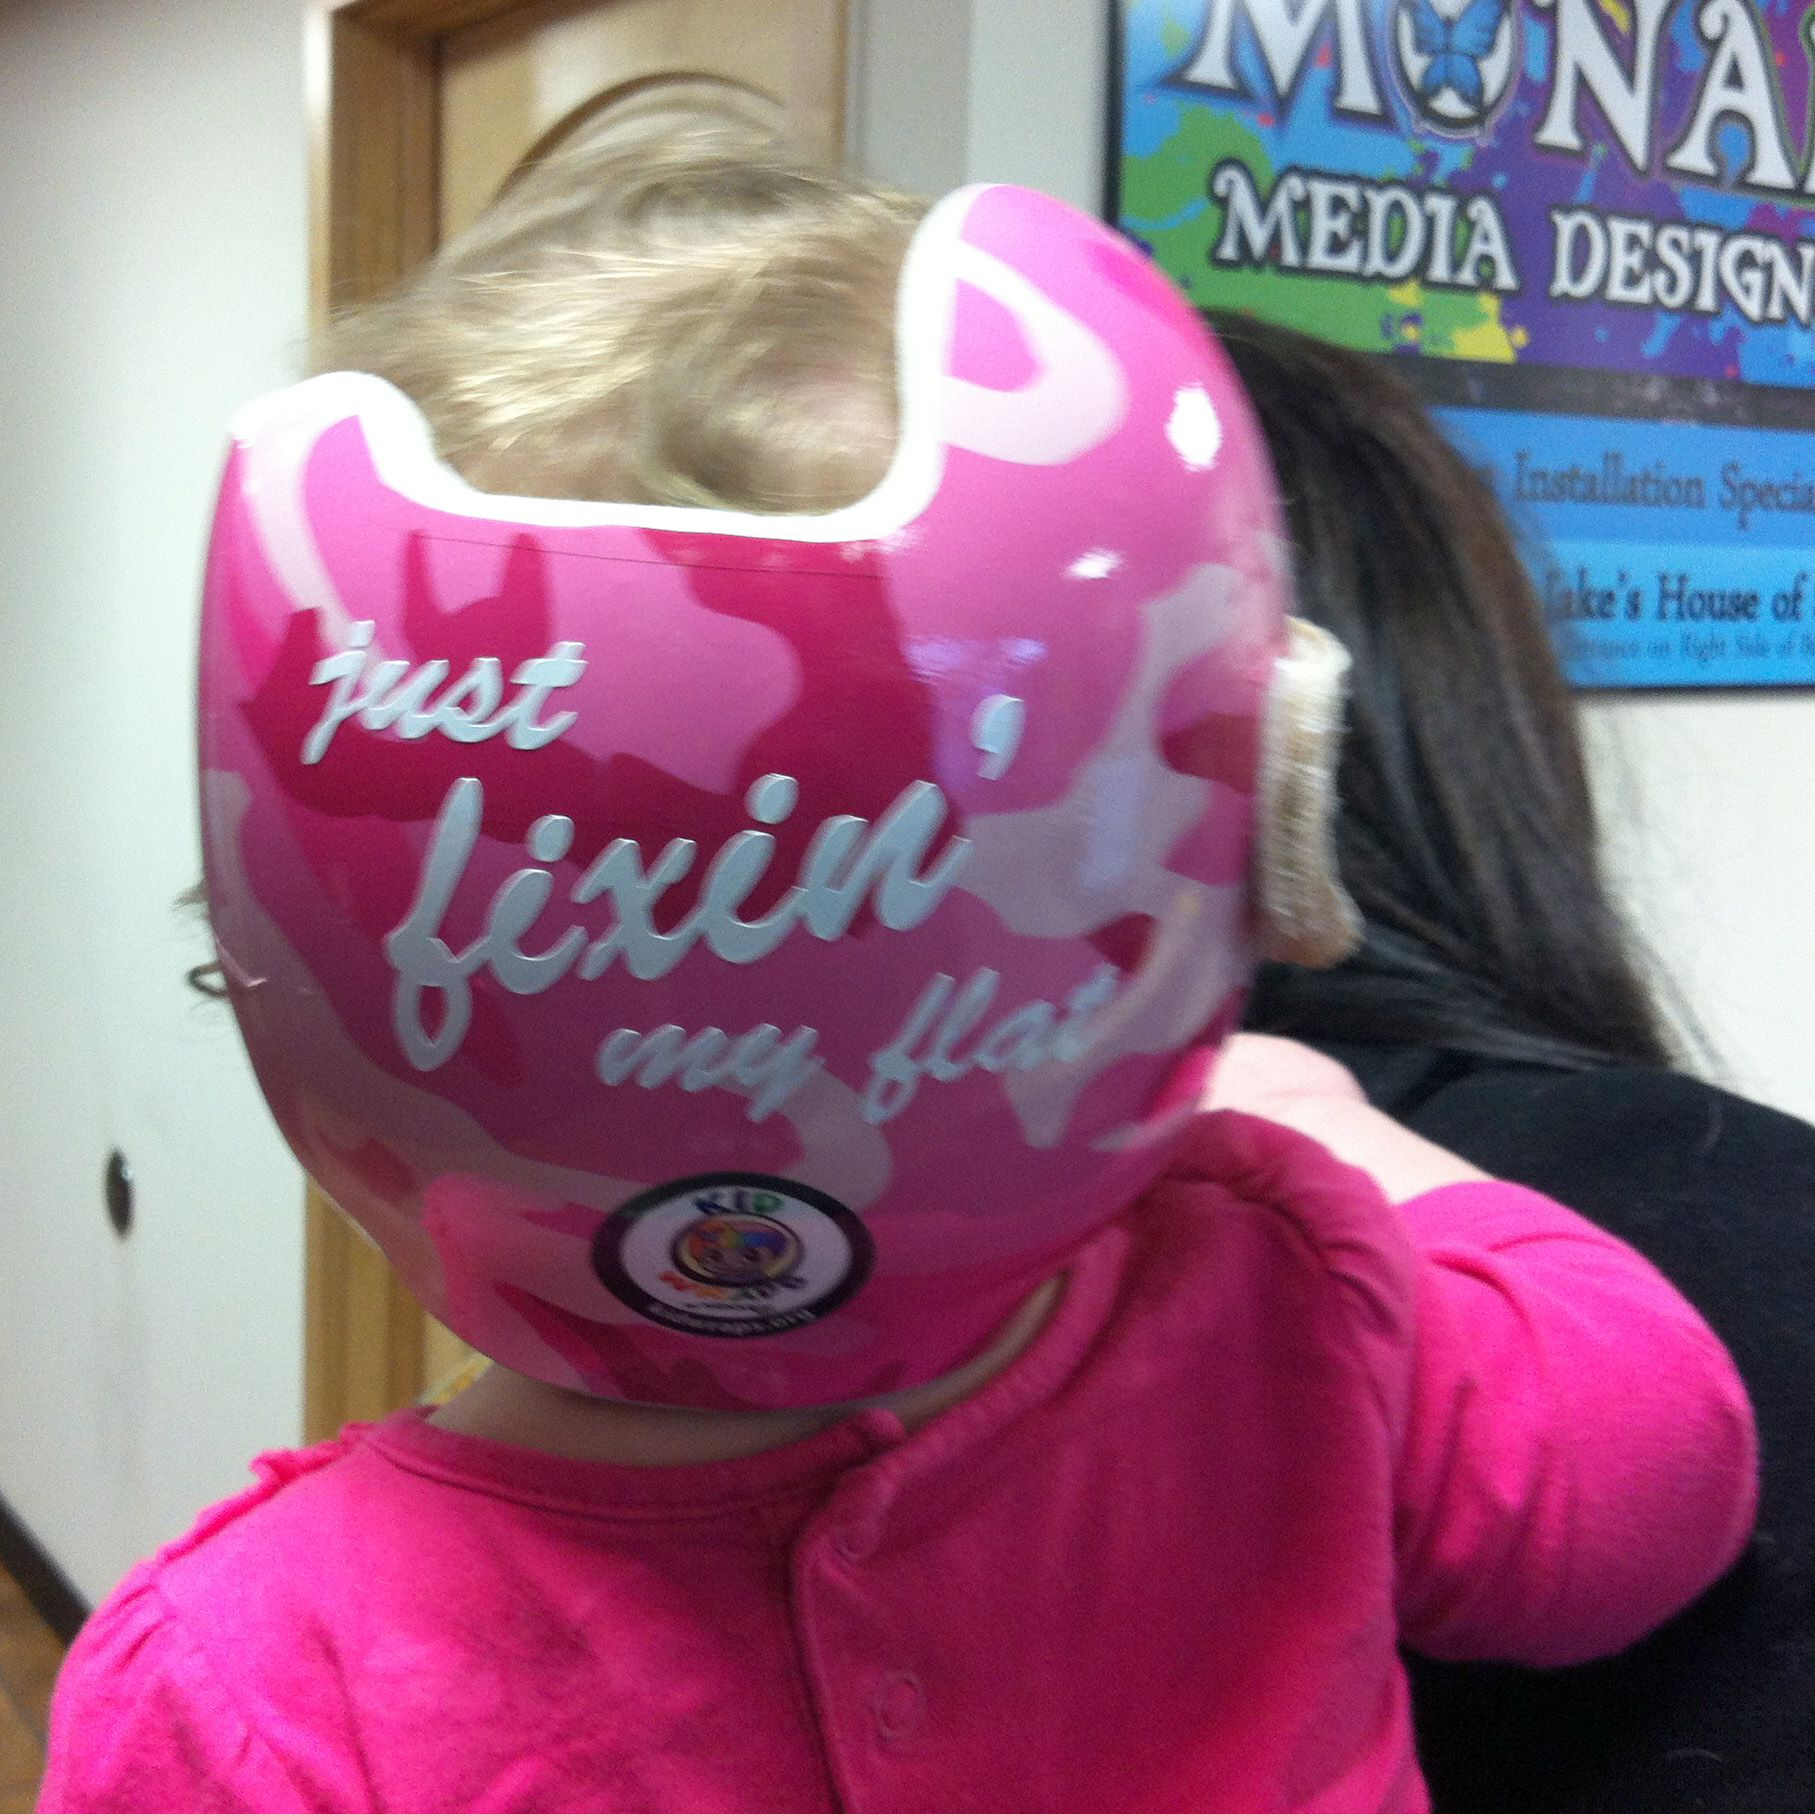 Www kidwraps org skylars pink camo doc band featured just fixin my flat on the back of it done by monarch media designs in madison wi